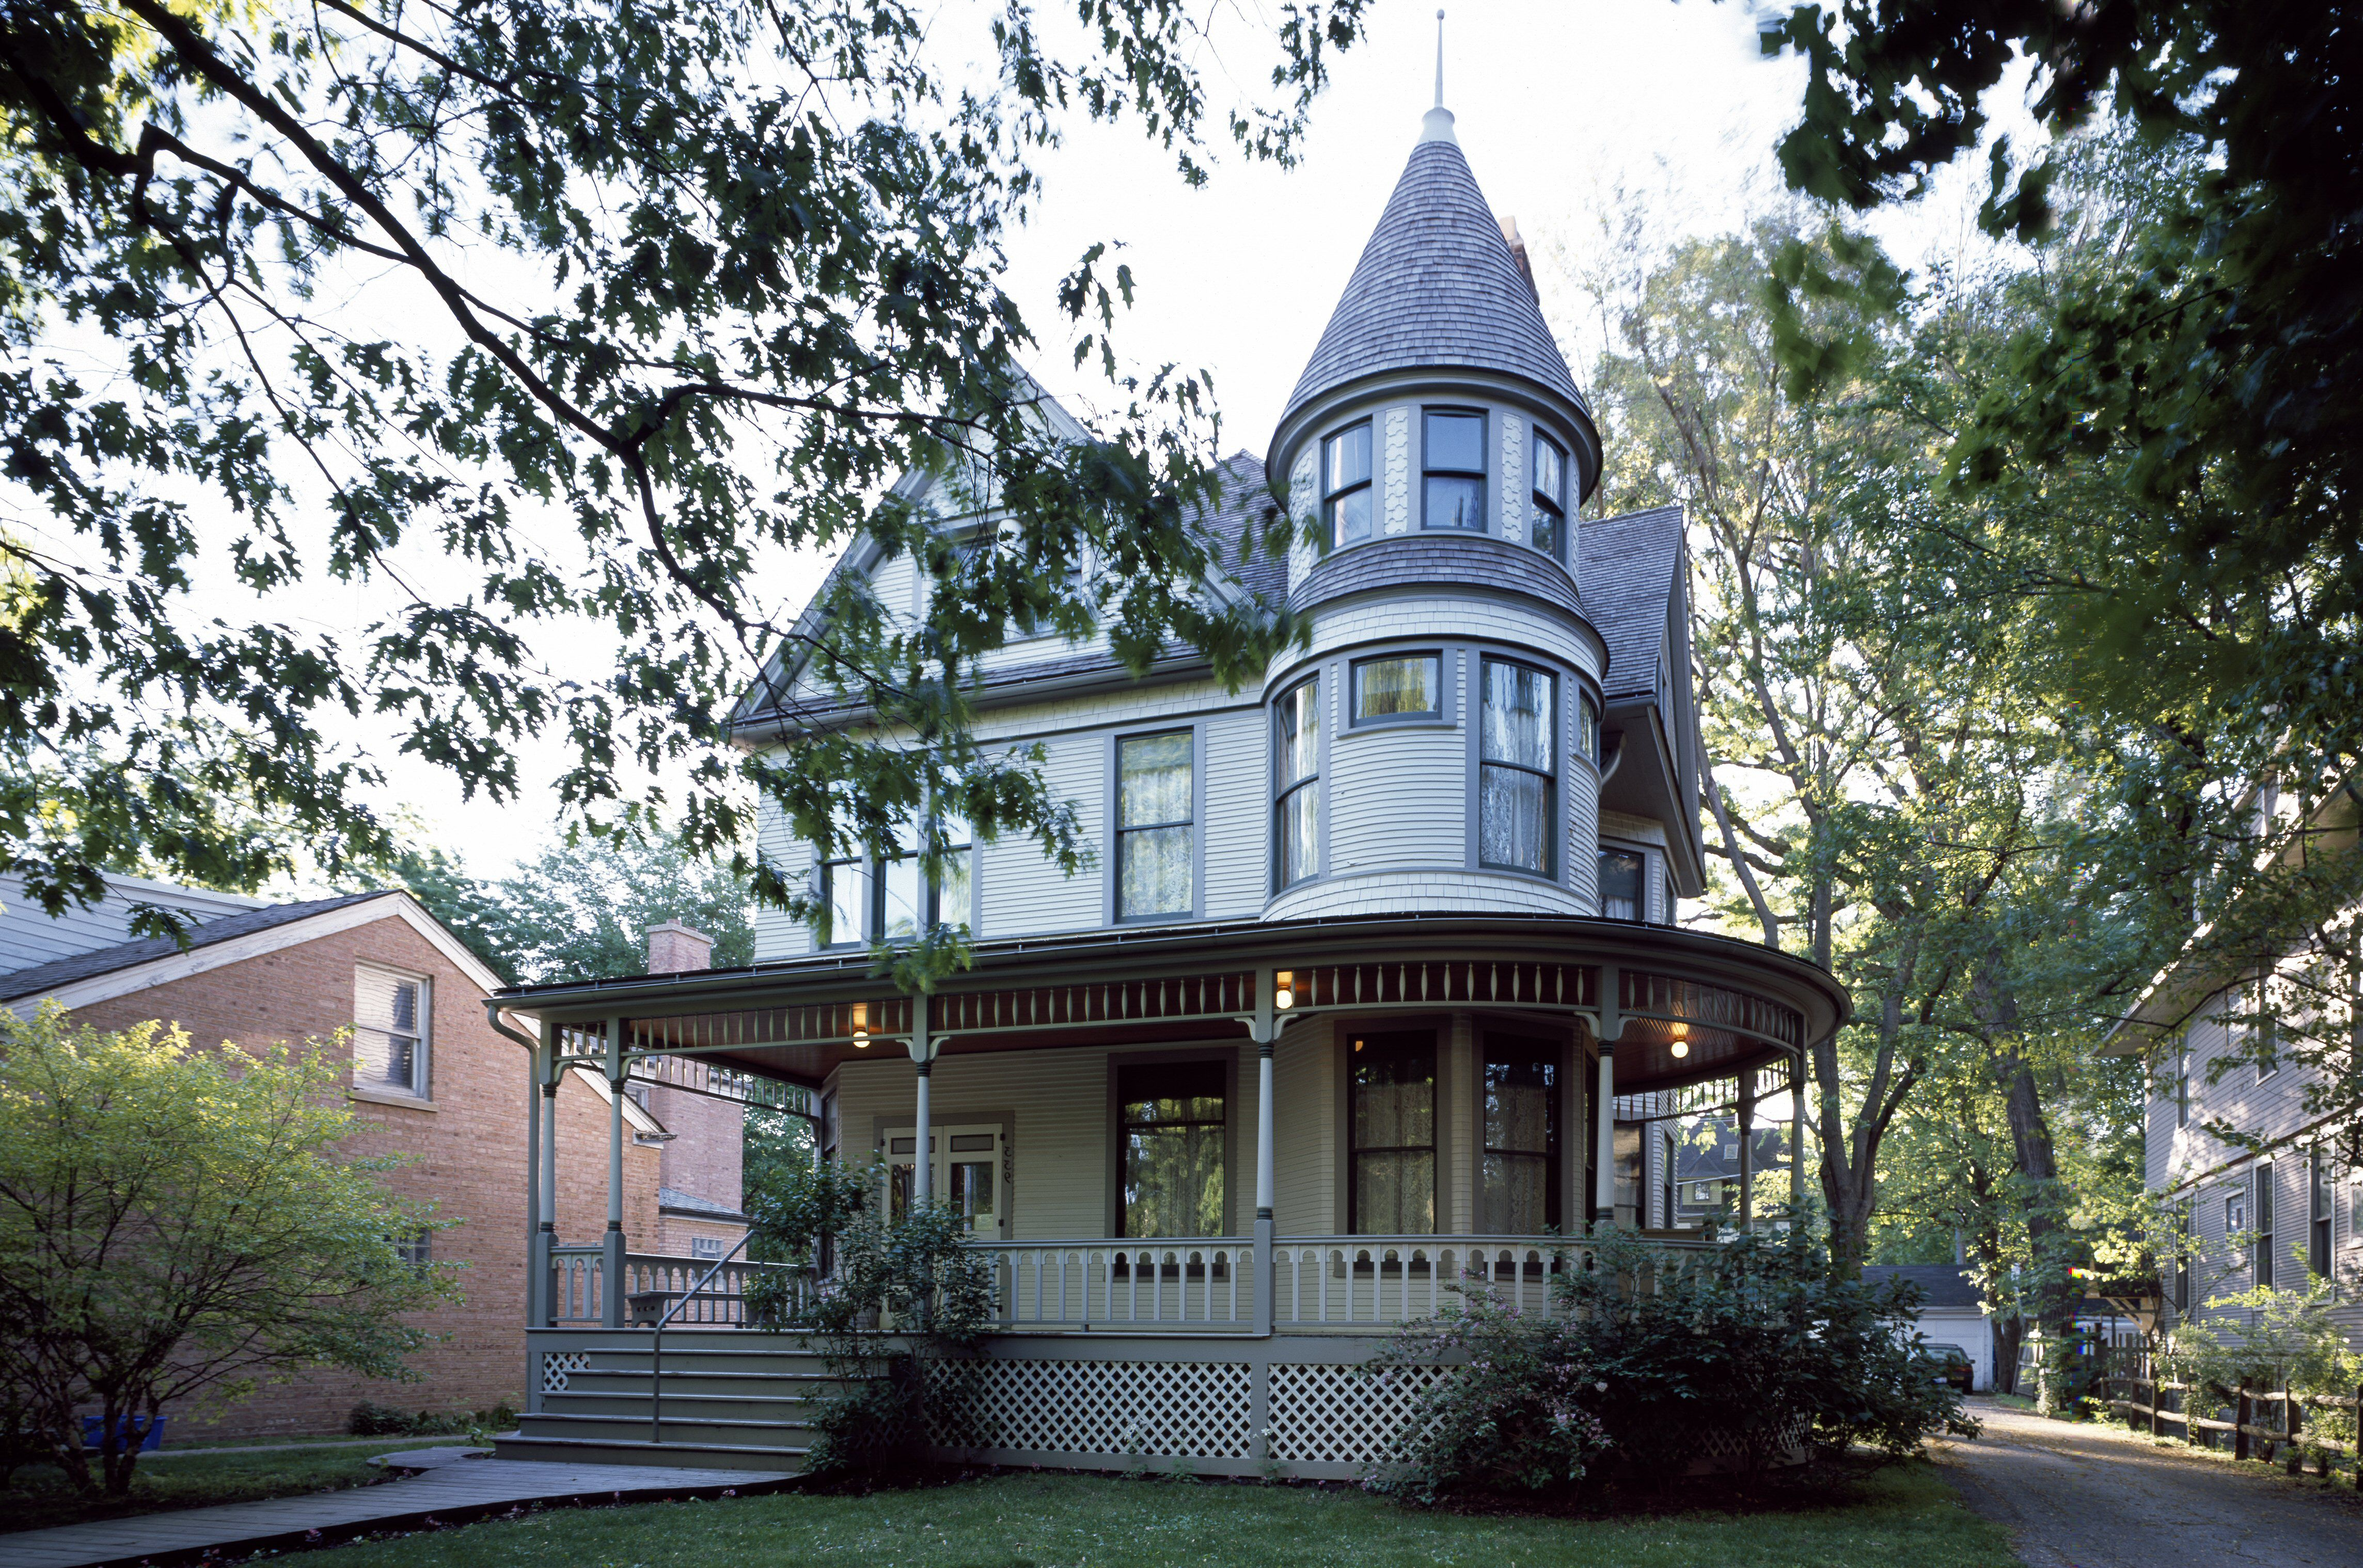 Architectural Styles, American Homes From 1600 to Today on 1890 ranch homes, 1890 folk victorian homes, 1890 american homes, 1890 colonial revival homes,